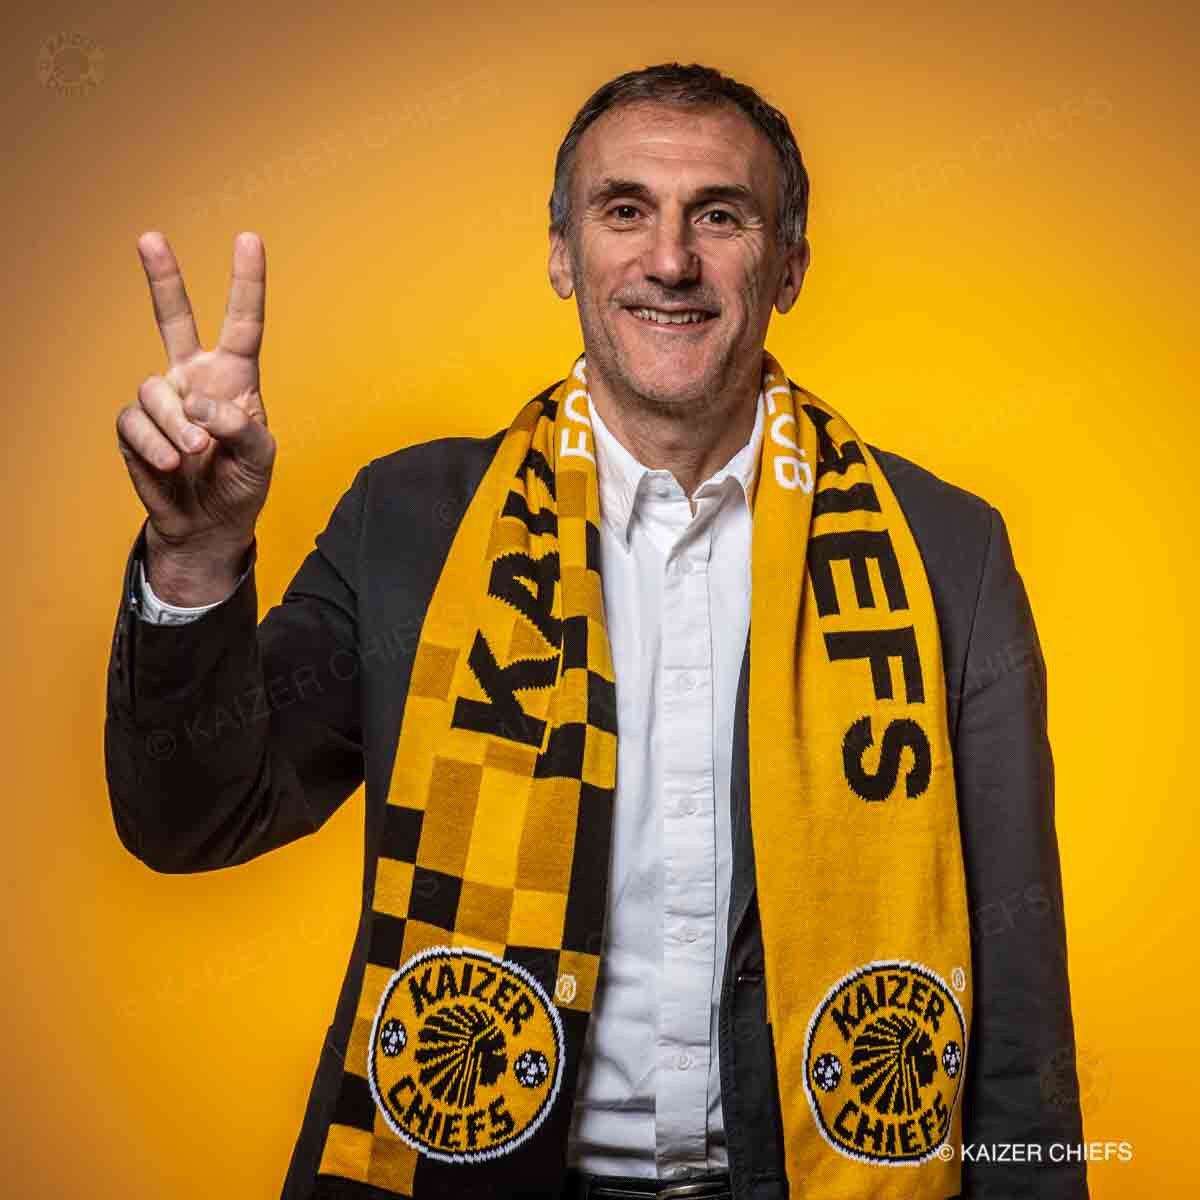 Here he is! Introducing our new coach, Giovanni Solinas. #HeIsHere #Amakhosi4Life https://t.co/O8re9iMPdb